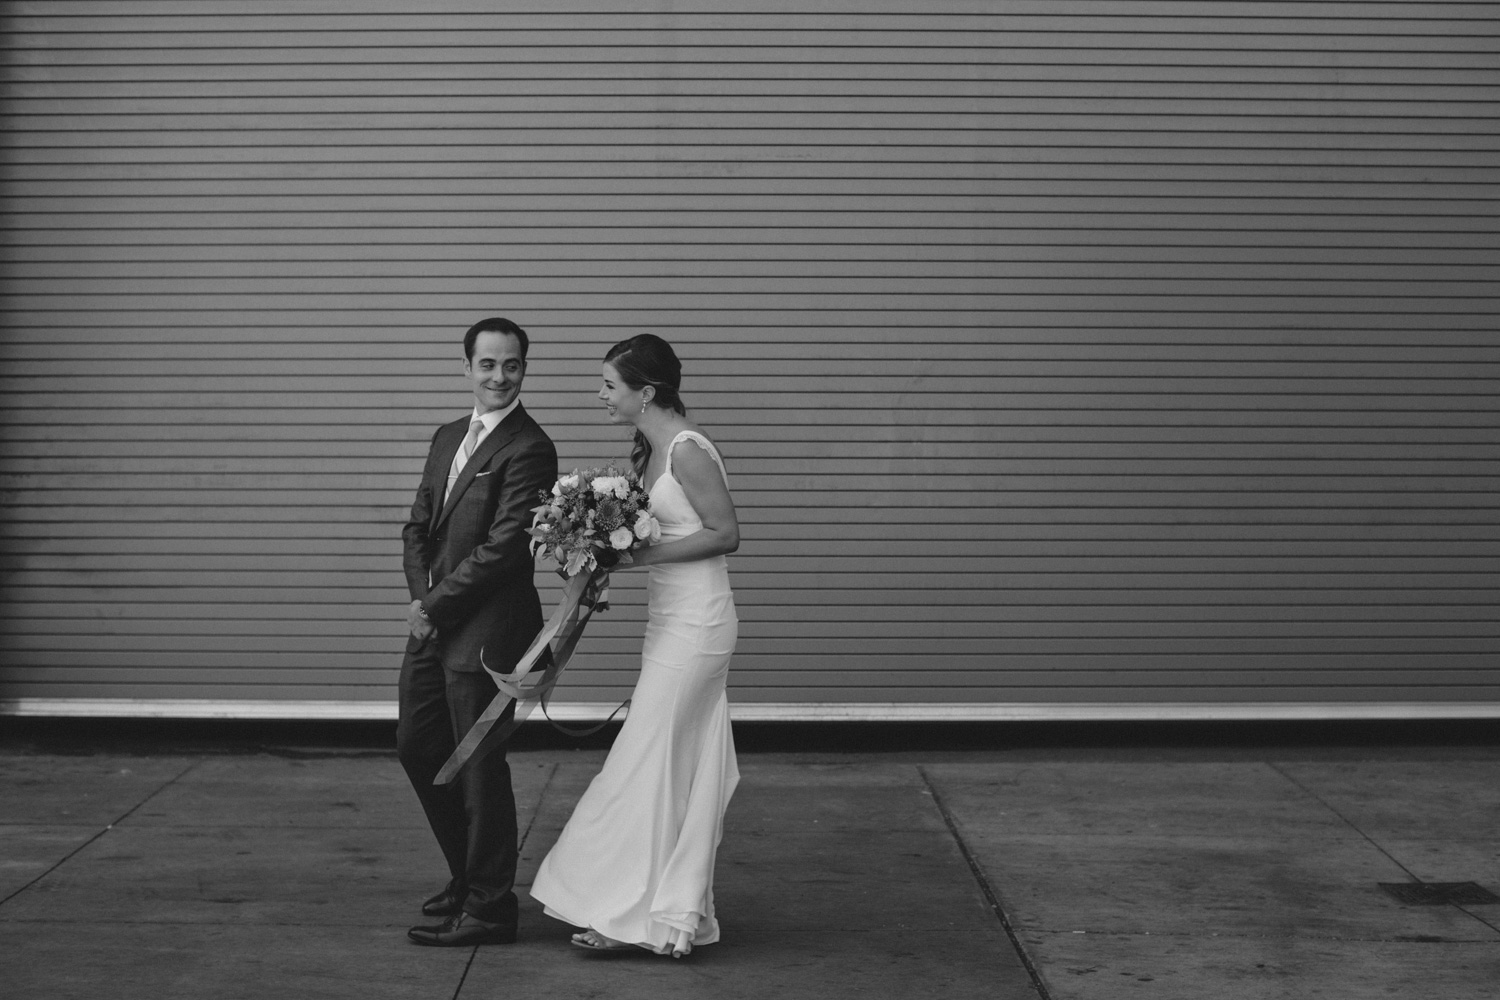 steam-whistle-brewery-wedding-photos-toronto-wedding-photography-by-sam-wong-of-artanis-collective_01018